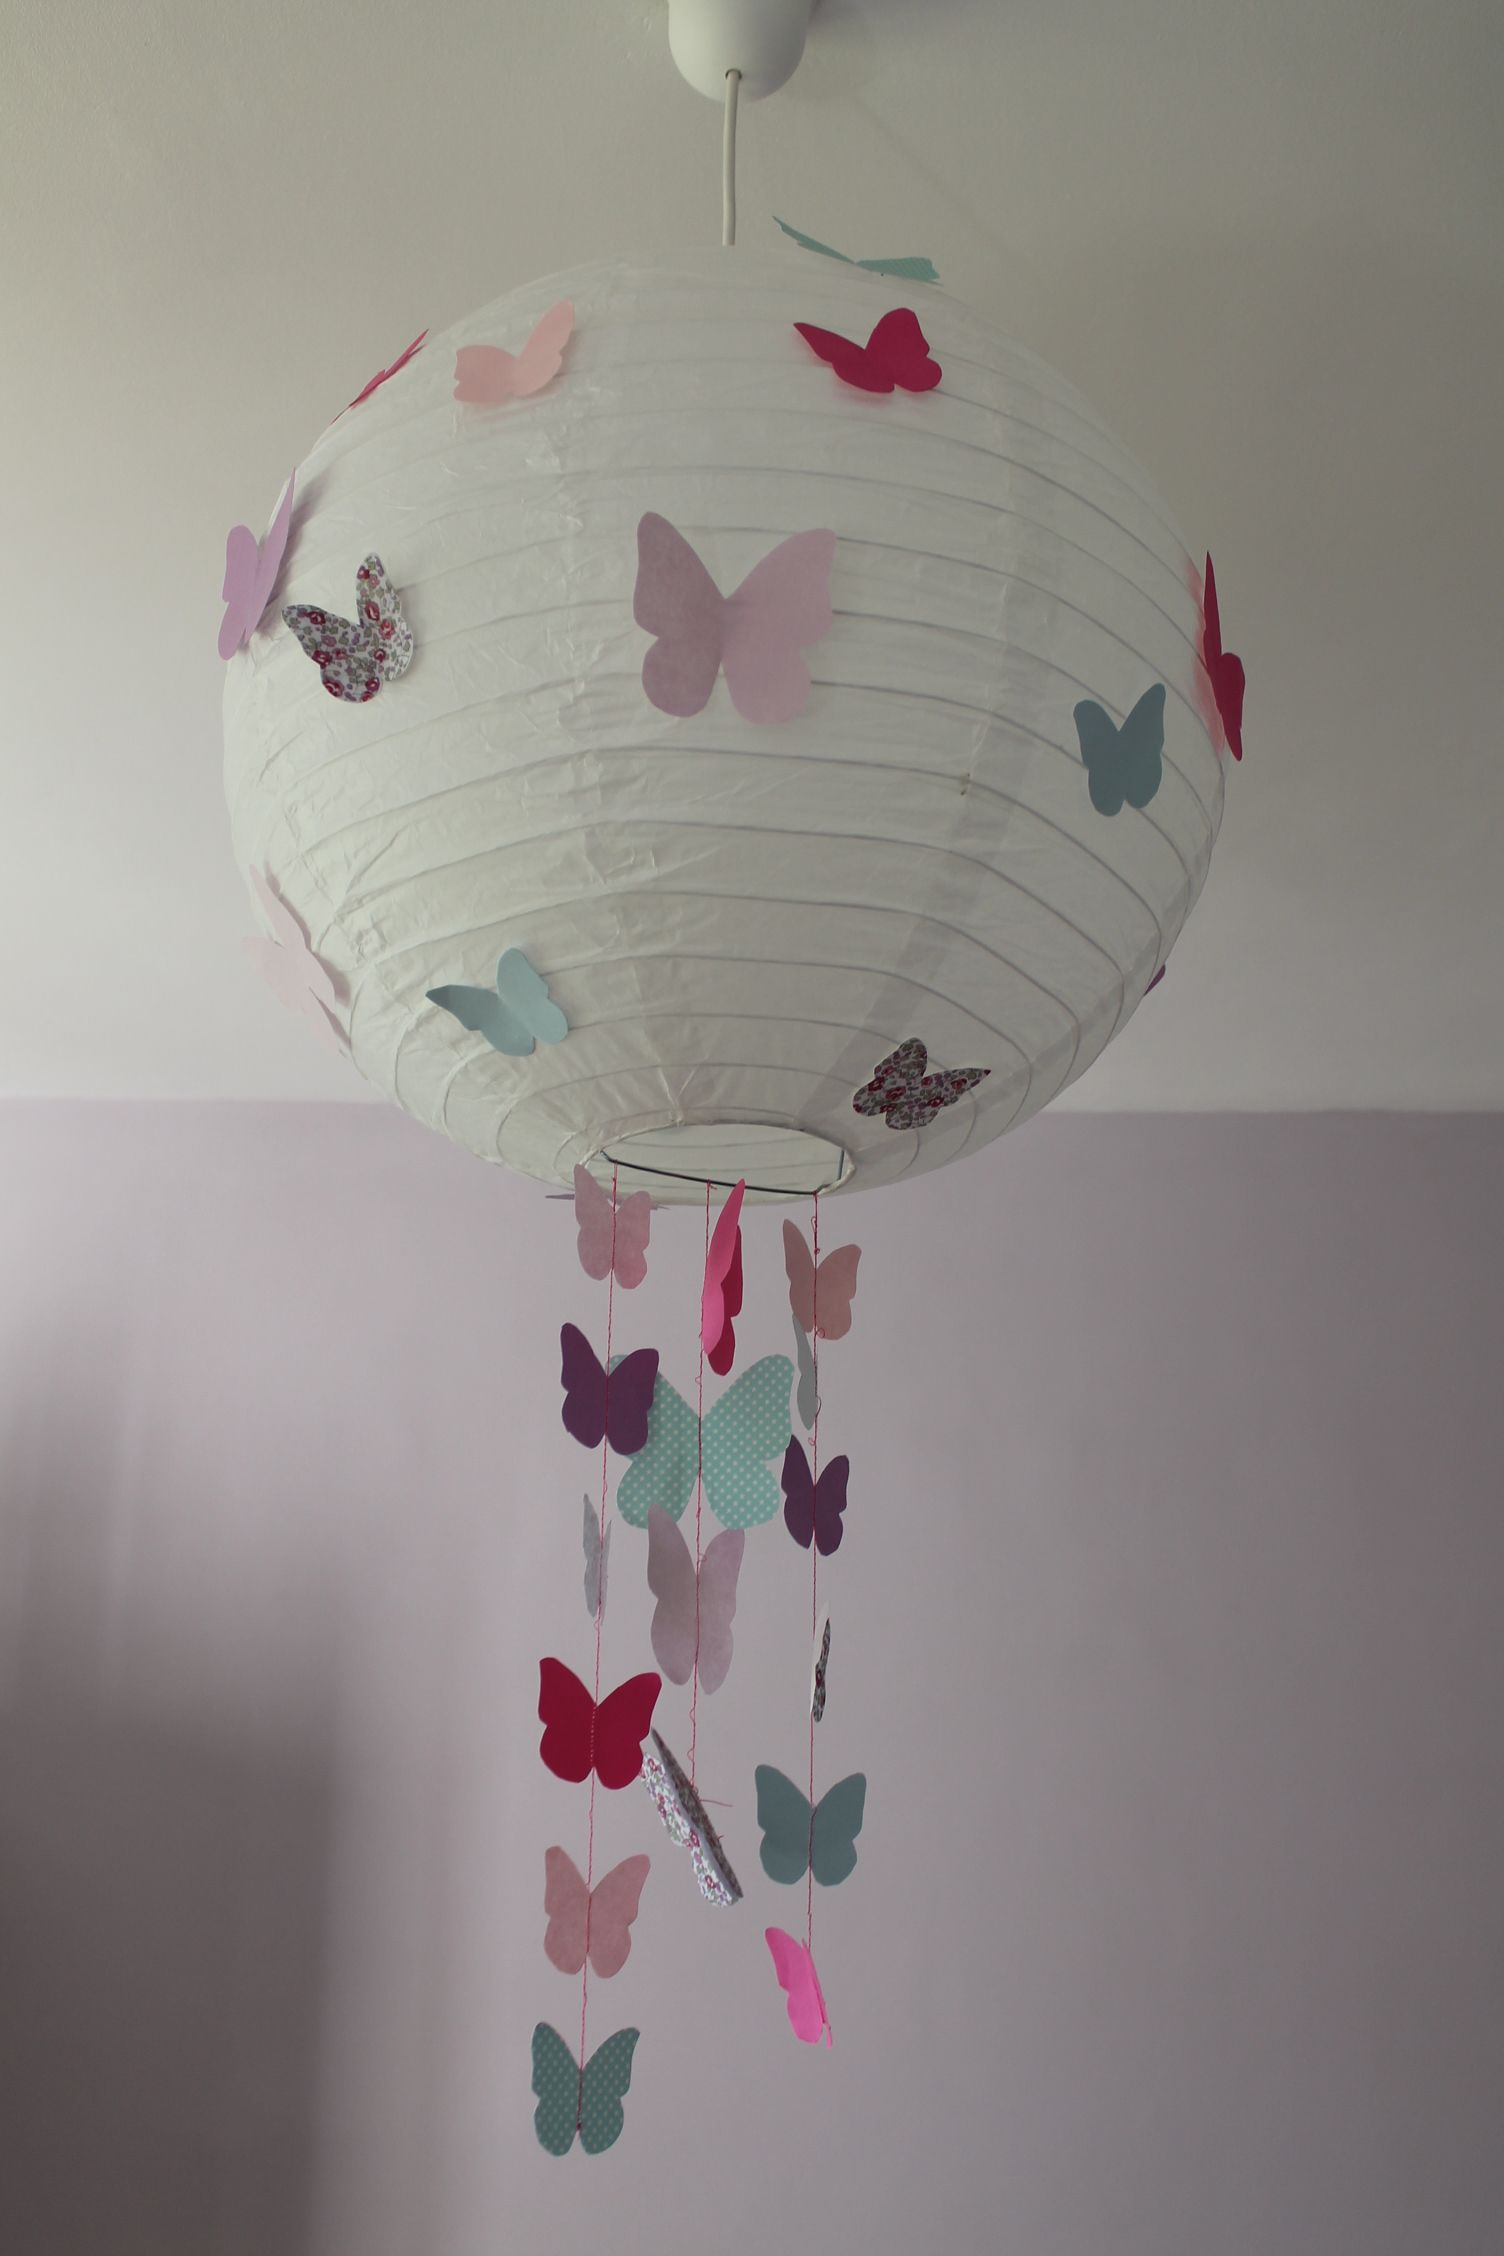 diy boule japonaise papillons light and butterfly lampe papier pinterest bricolage. Black Bedroom Furniture Sets. Home Design Ideas